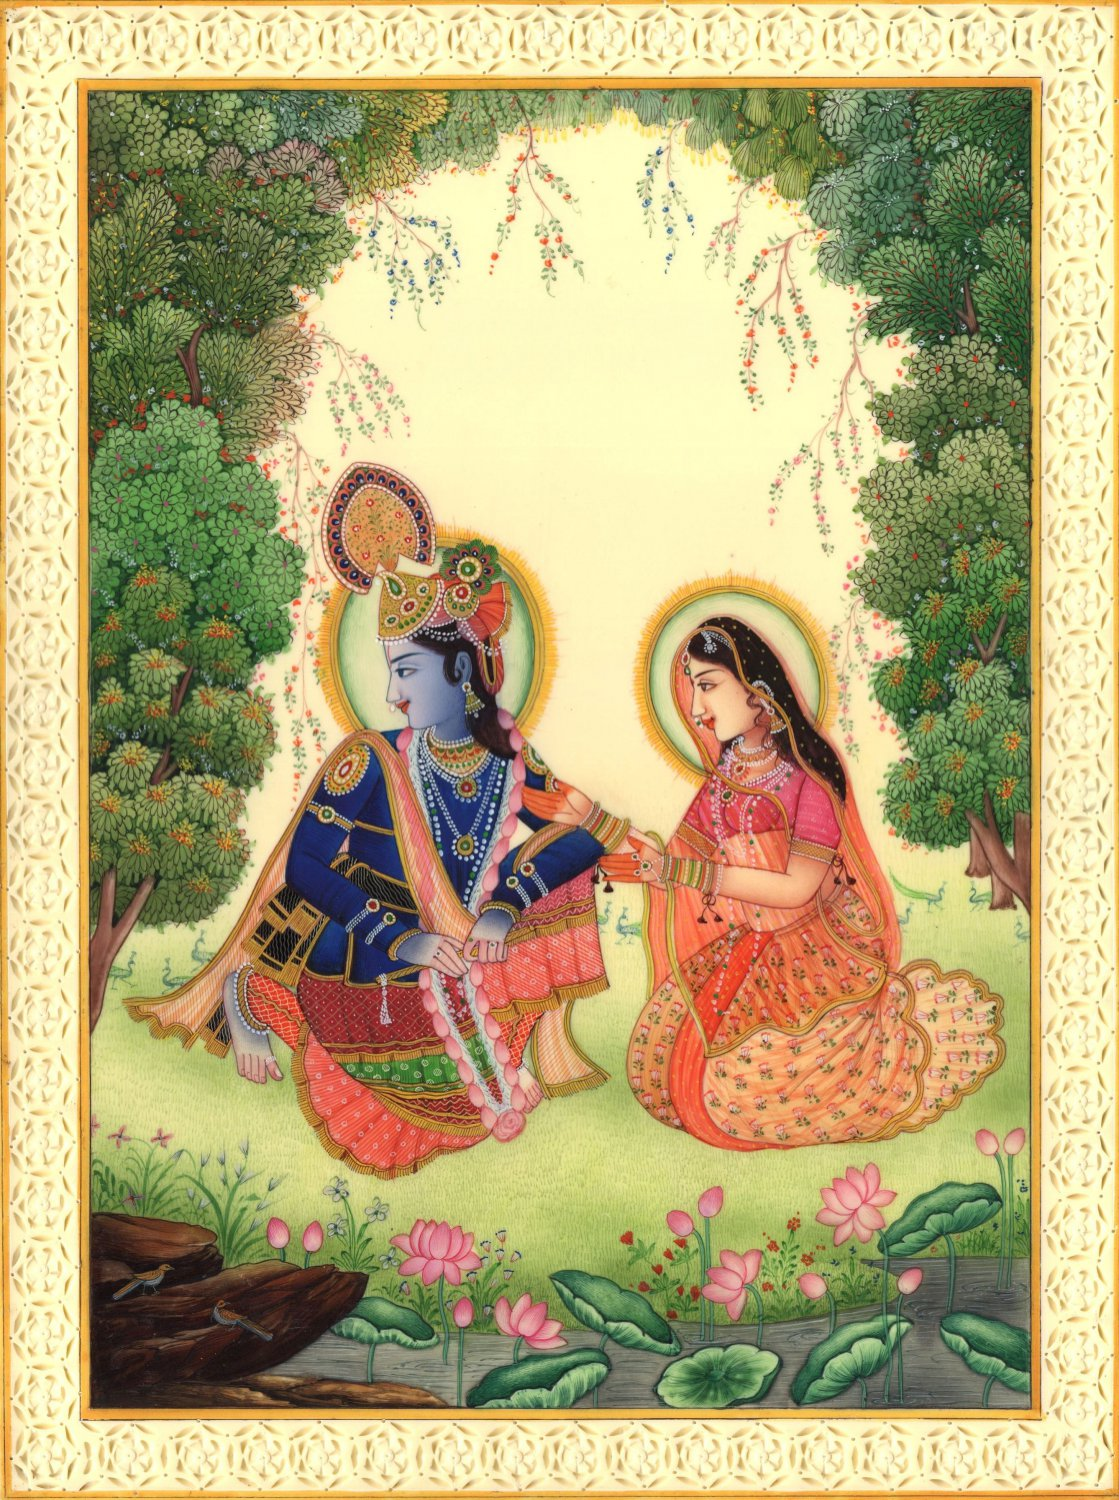 Krishna Radha Spiritual Art Handmade Contemporary Hindu Miniature Decor Painting